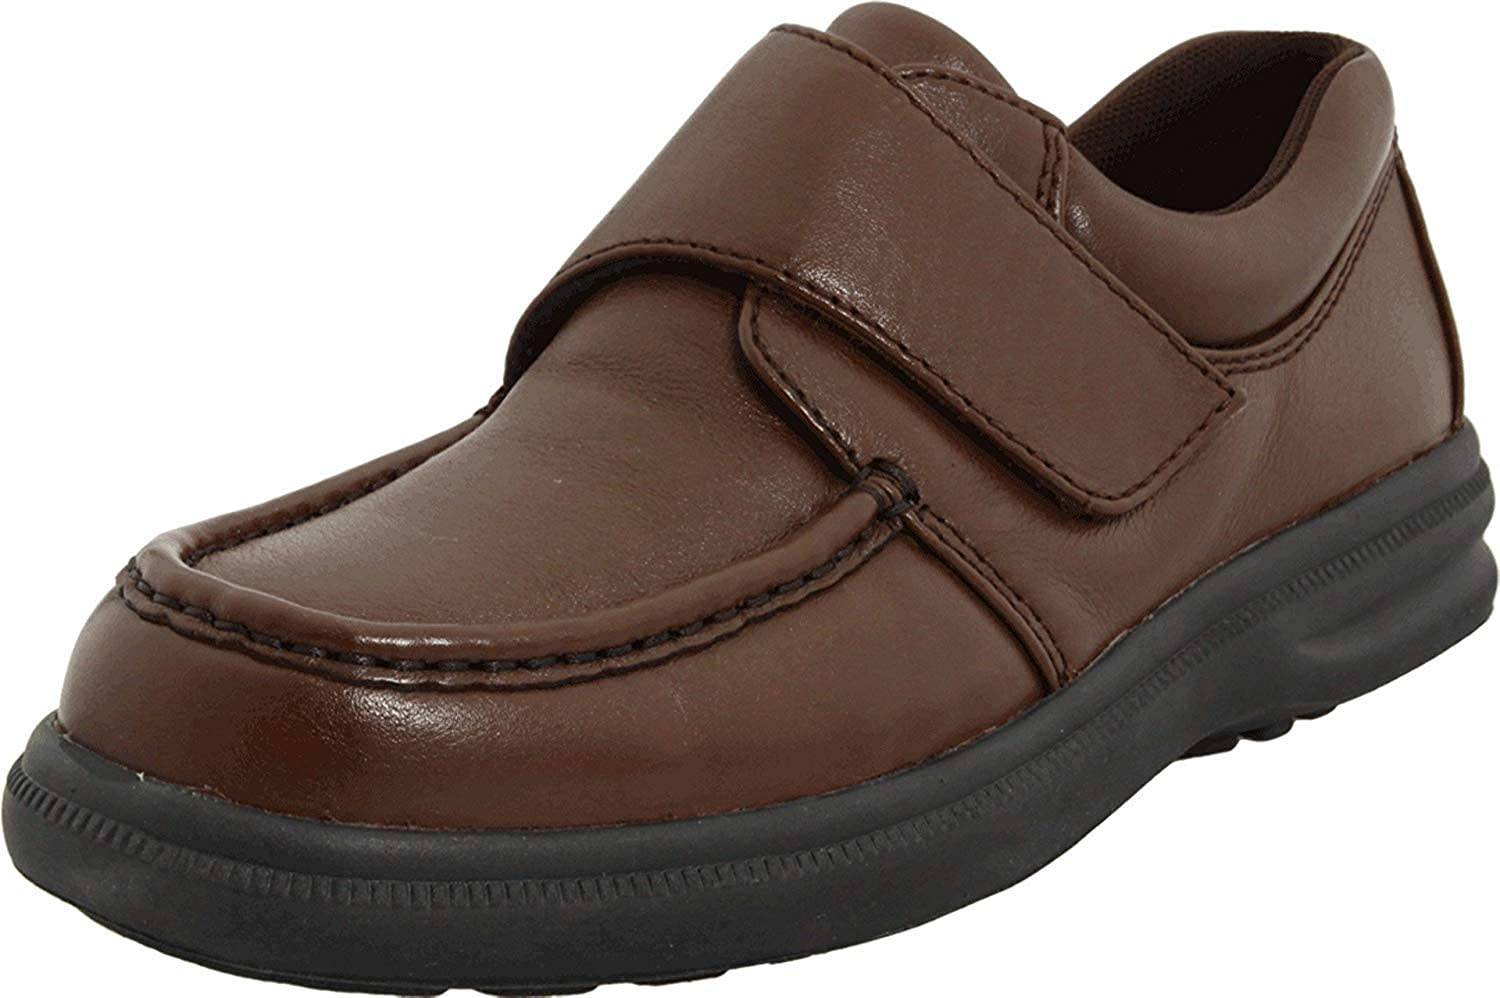 11.5 Hush Puppies Mens Gil Slip-On,Tan